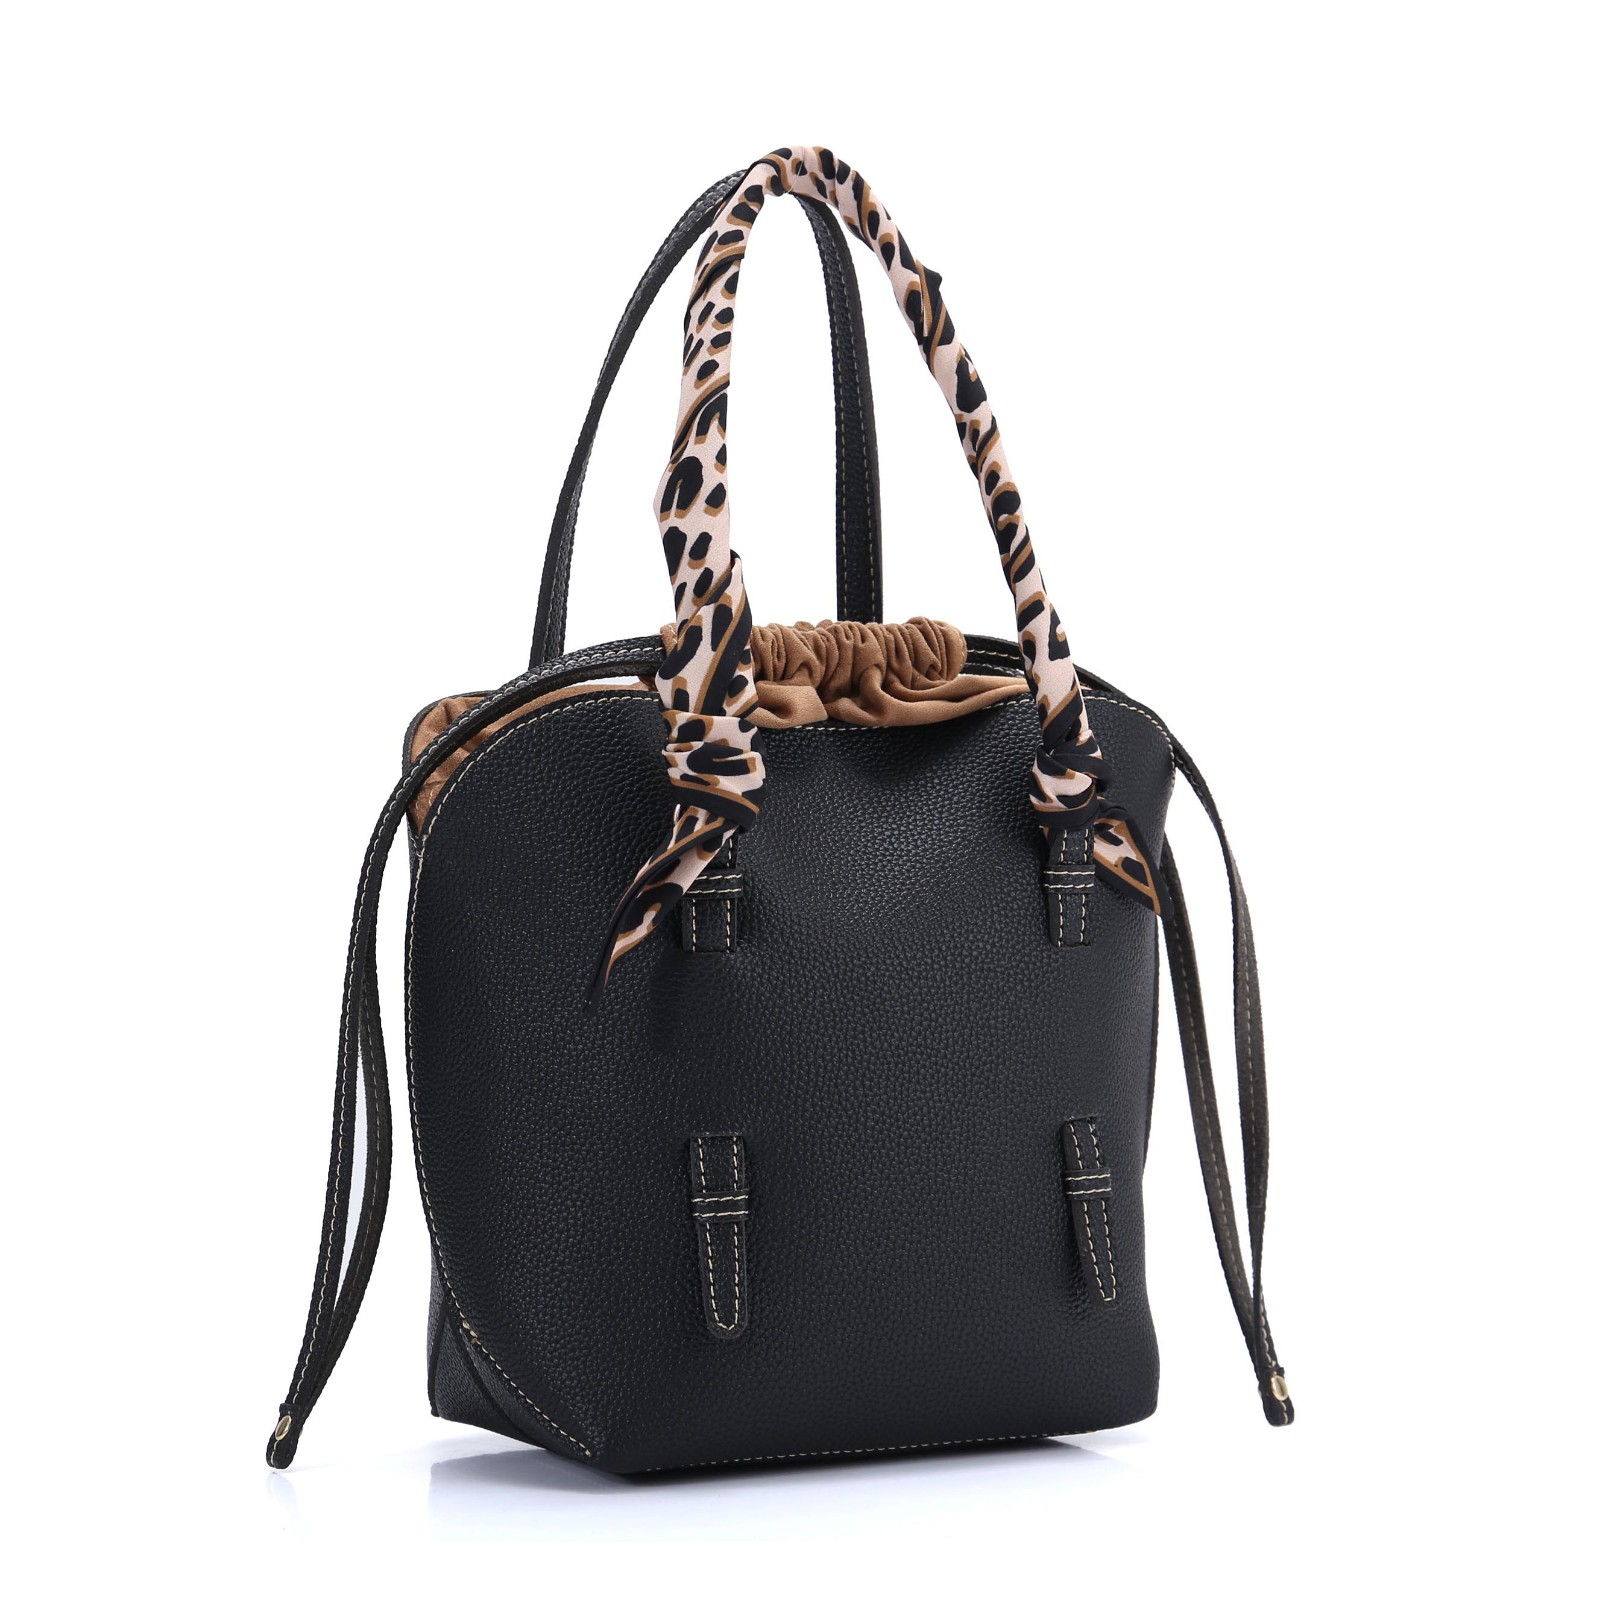 ANGEDANLIA elegant black leather purse for sale for work-6